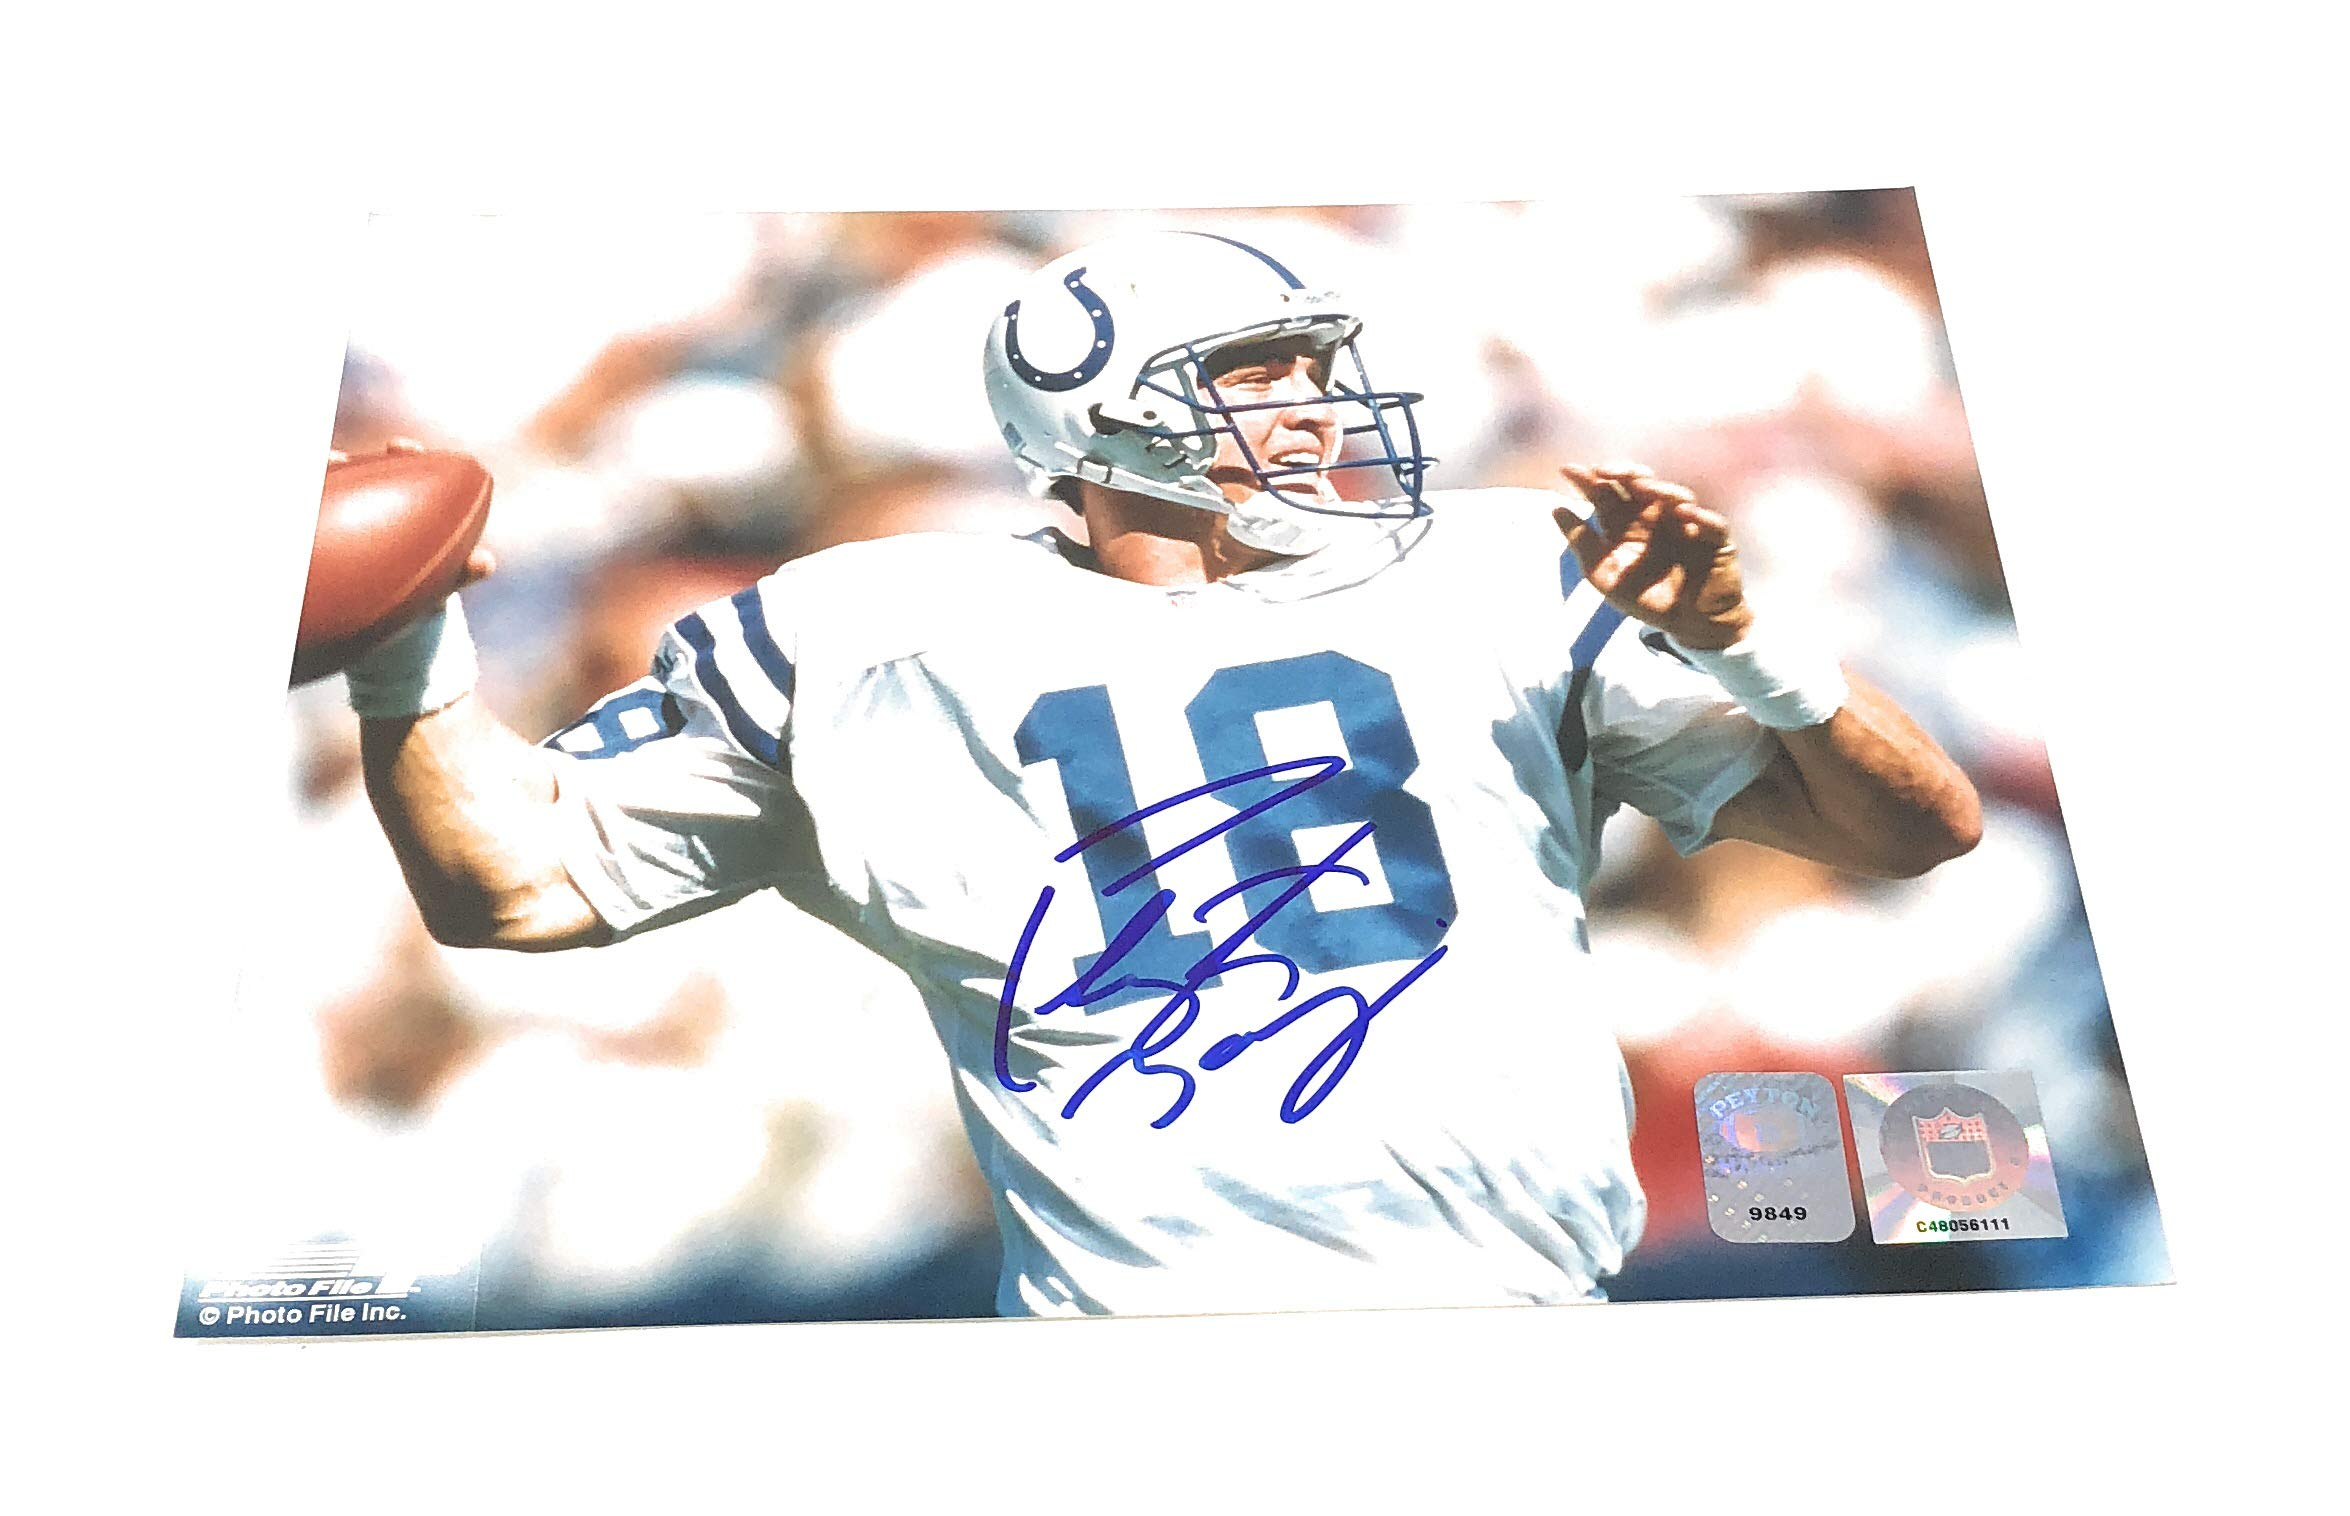 Peyton Manning Indianapolis Colts Signed Autograph 8x10 Photo Photograph P Manning Hologram Certified